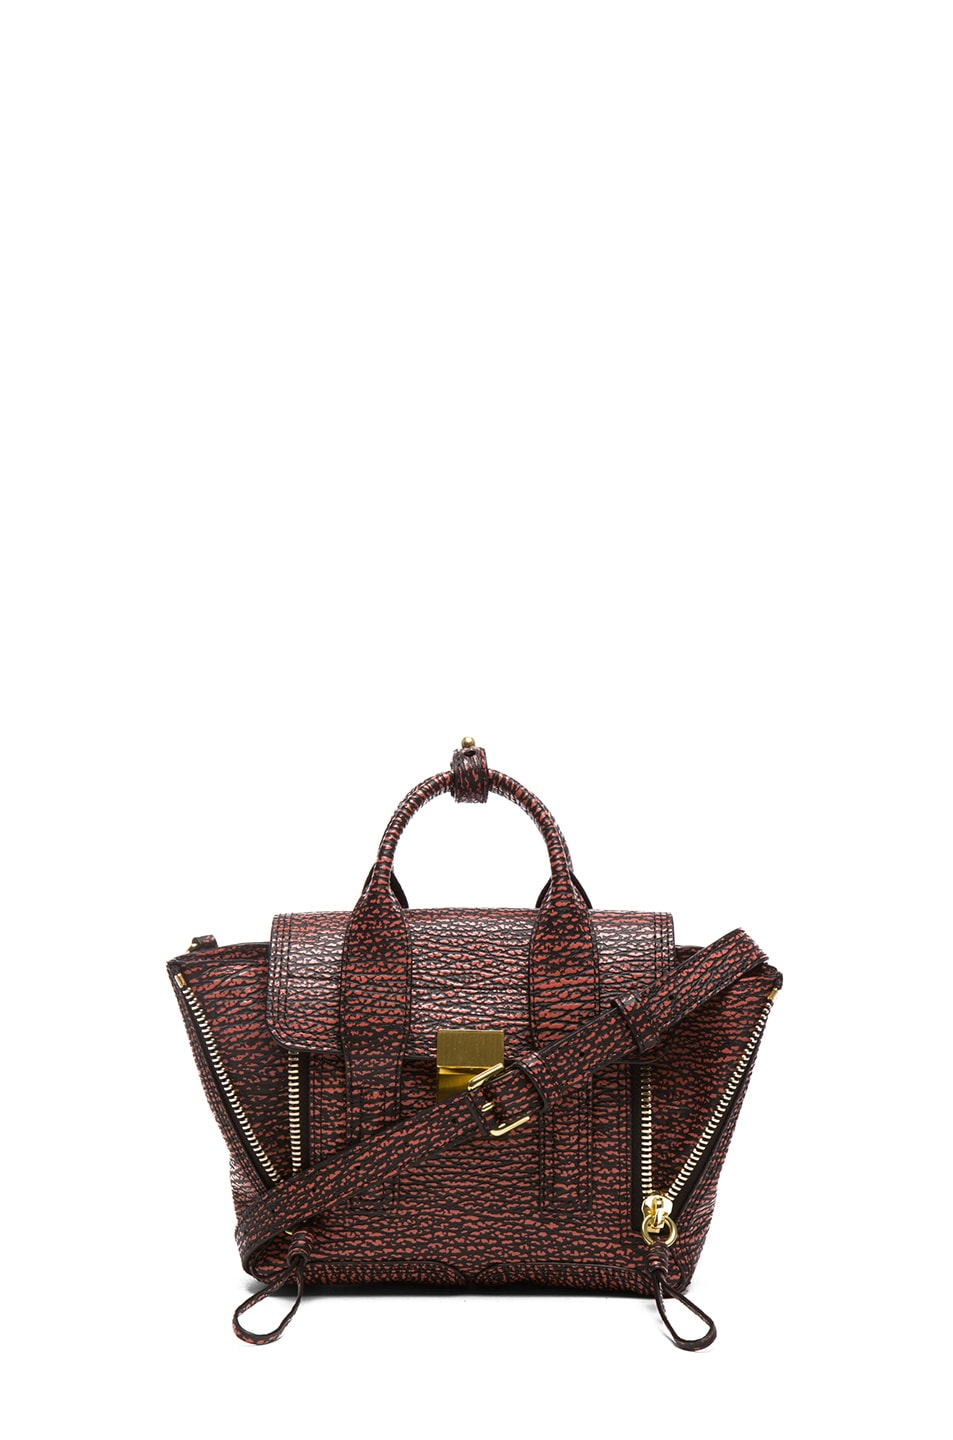 Image 1 of 3.1 phillip lim Mini Pashli Satchel in Black & Lava